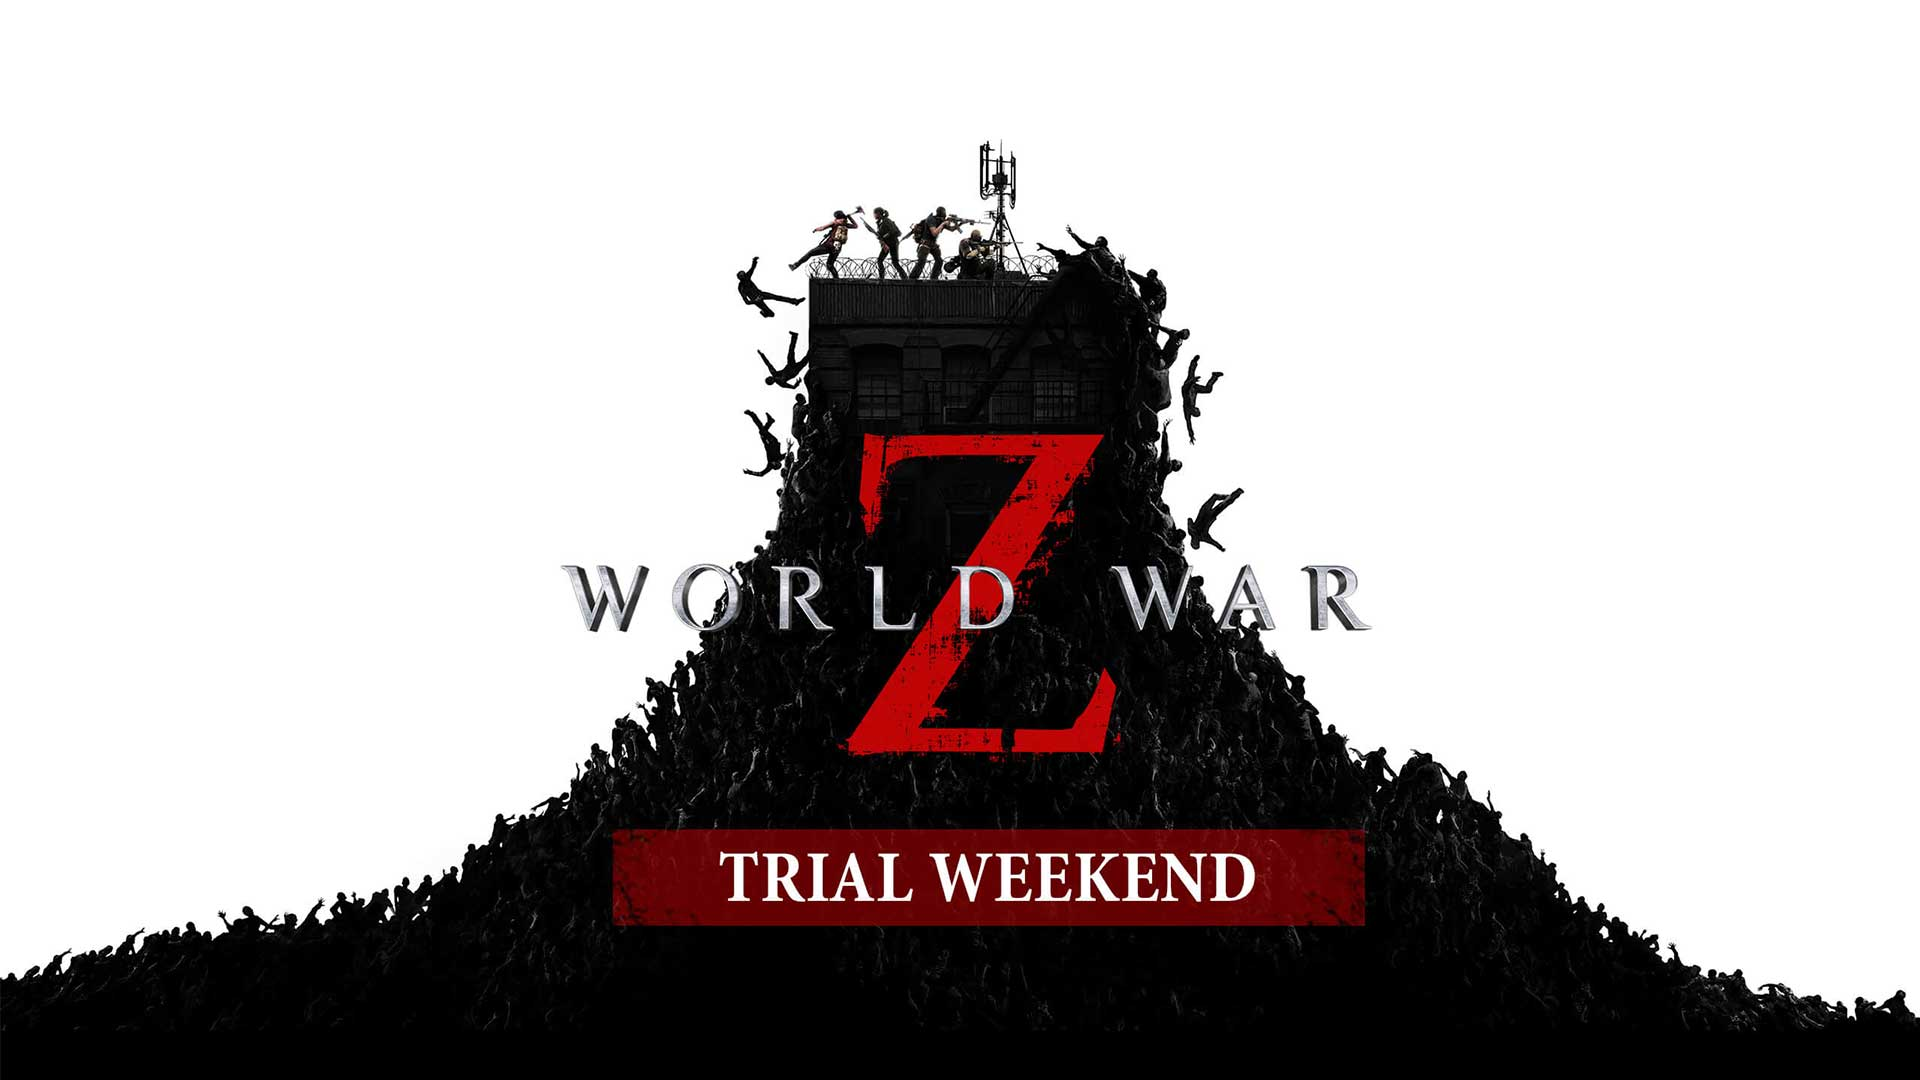 world war z trial weekend